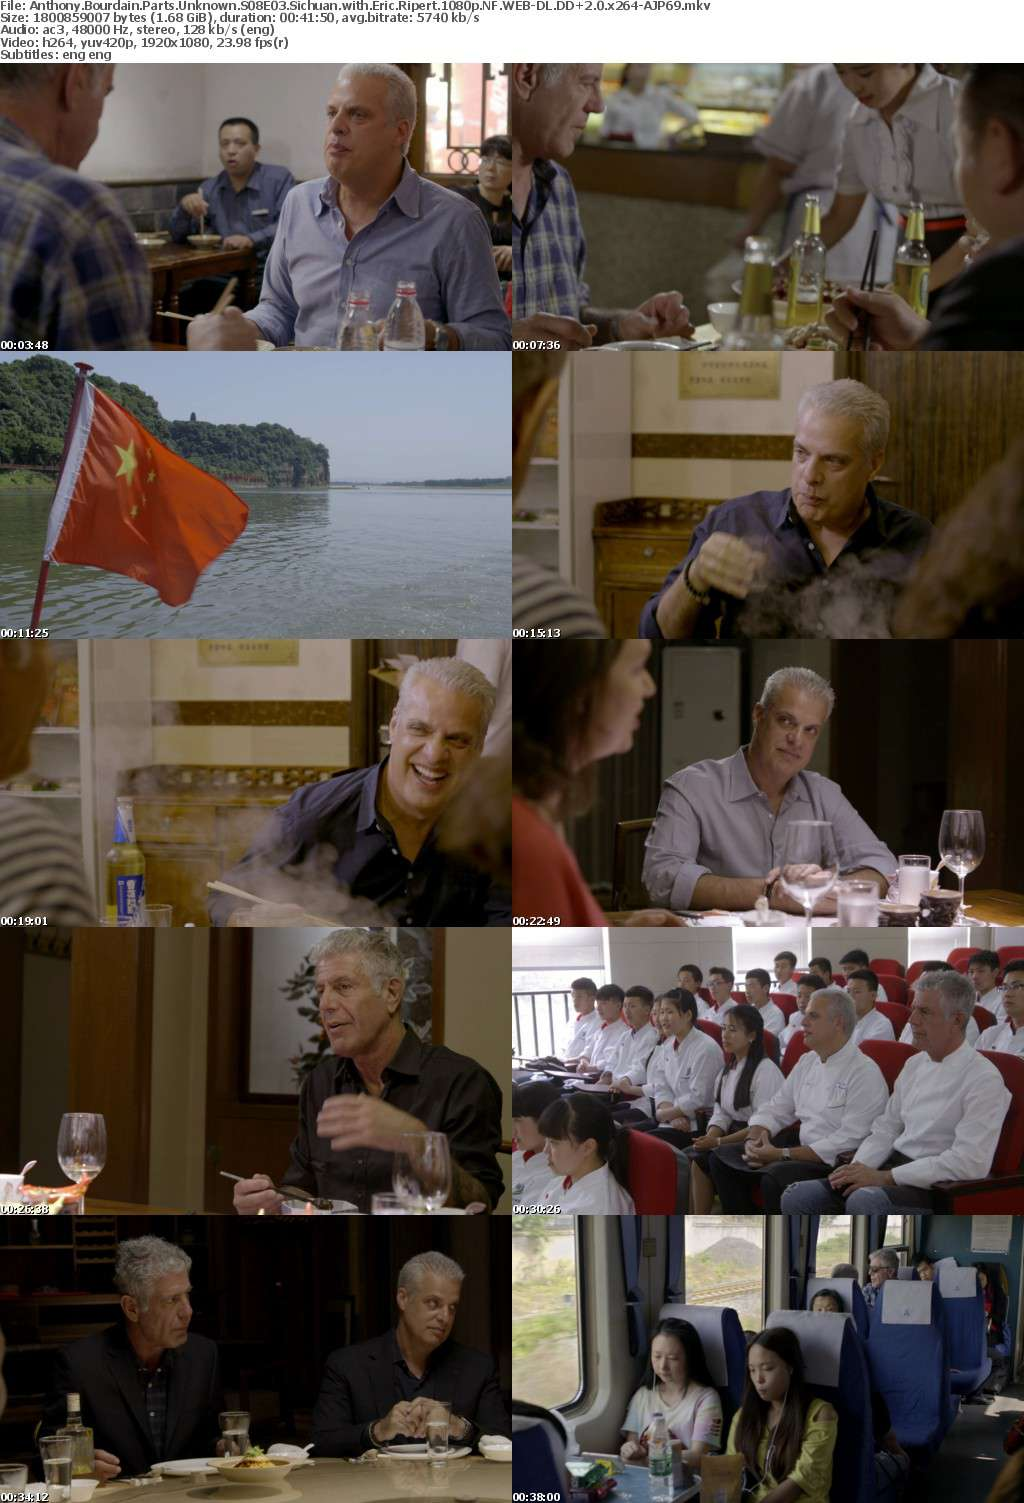 Anthony Bourdain Parts Unknown S08 1080p NF WEB-DL DDP2 0 x264-AJP69